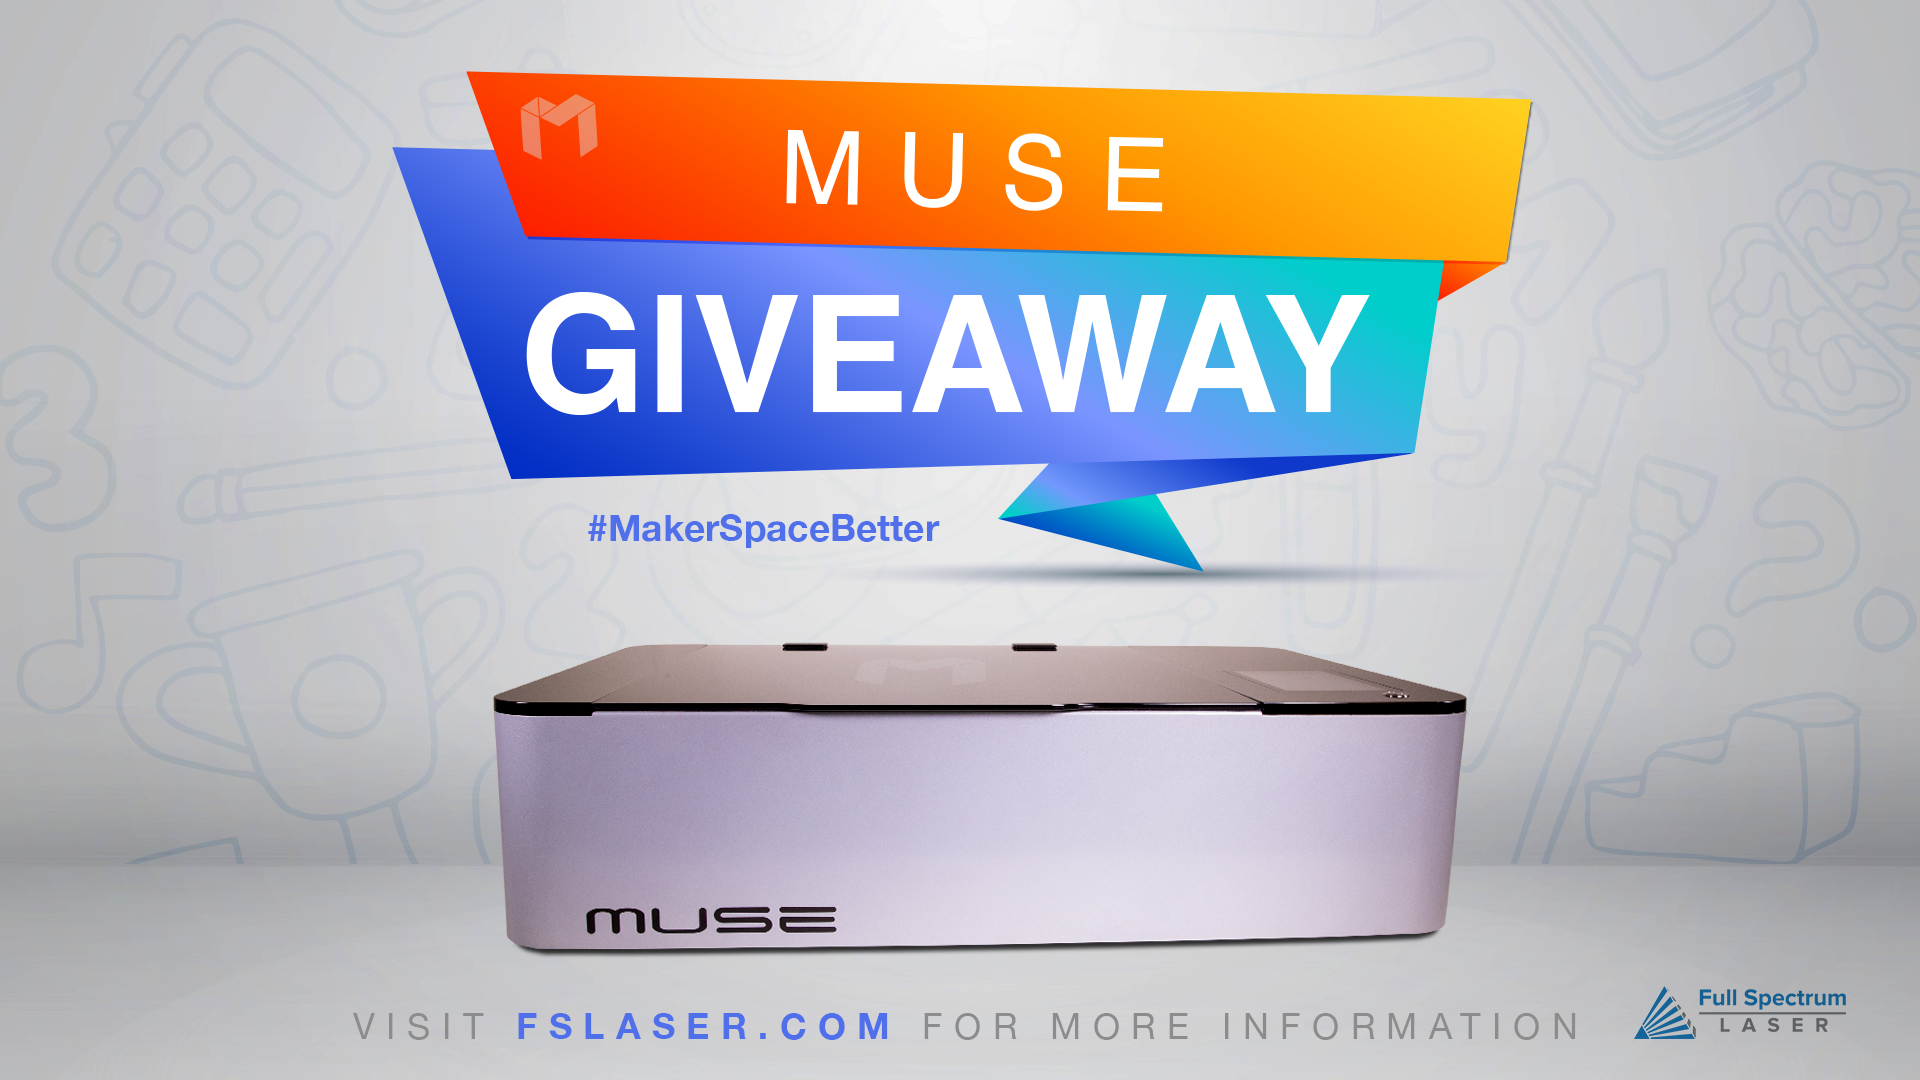 Muse Giveaway Contest!